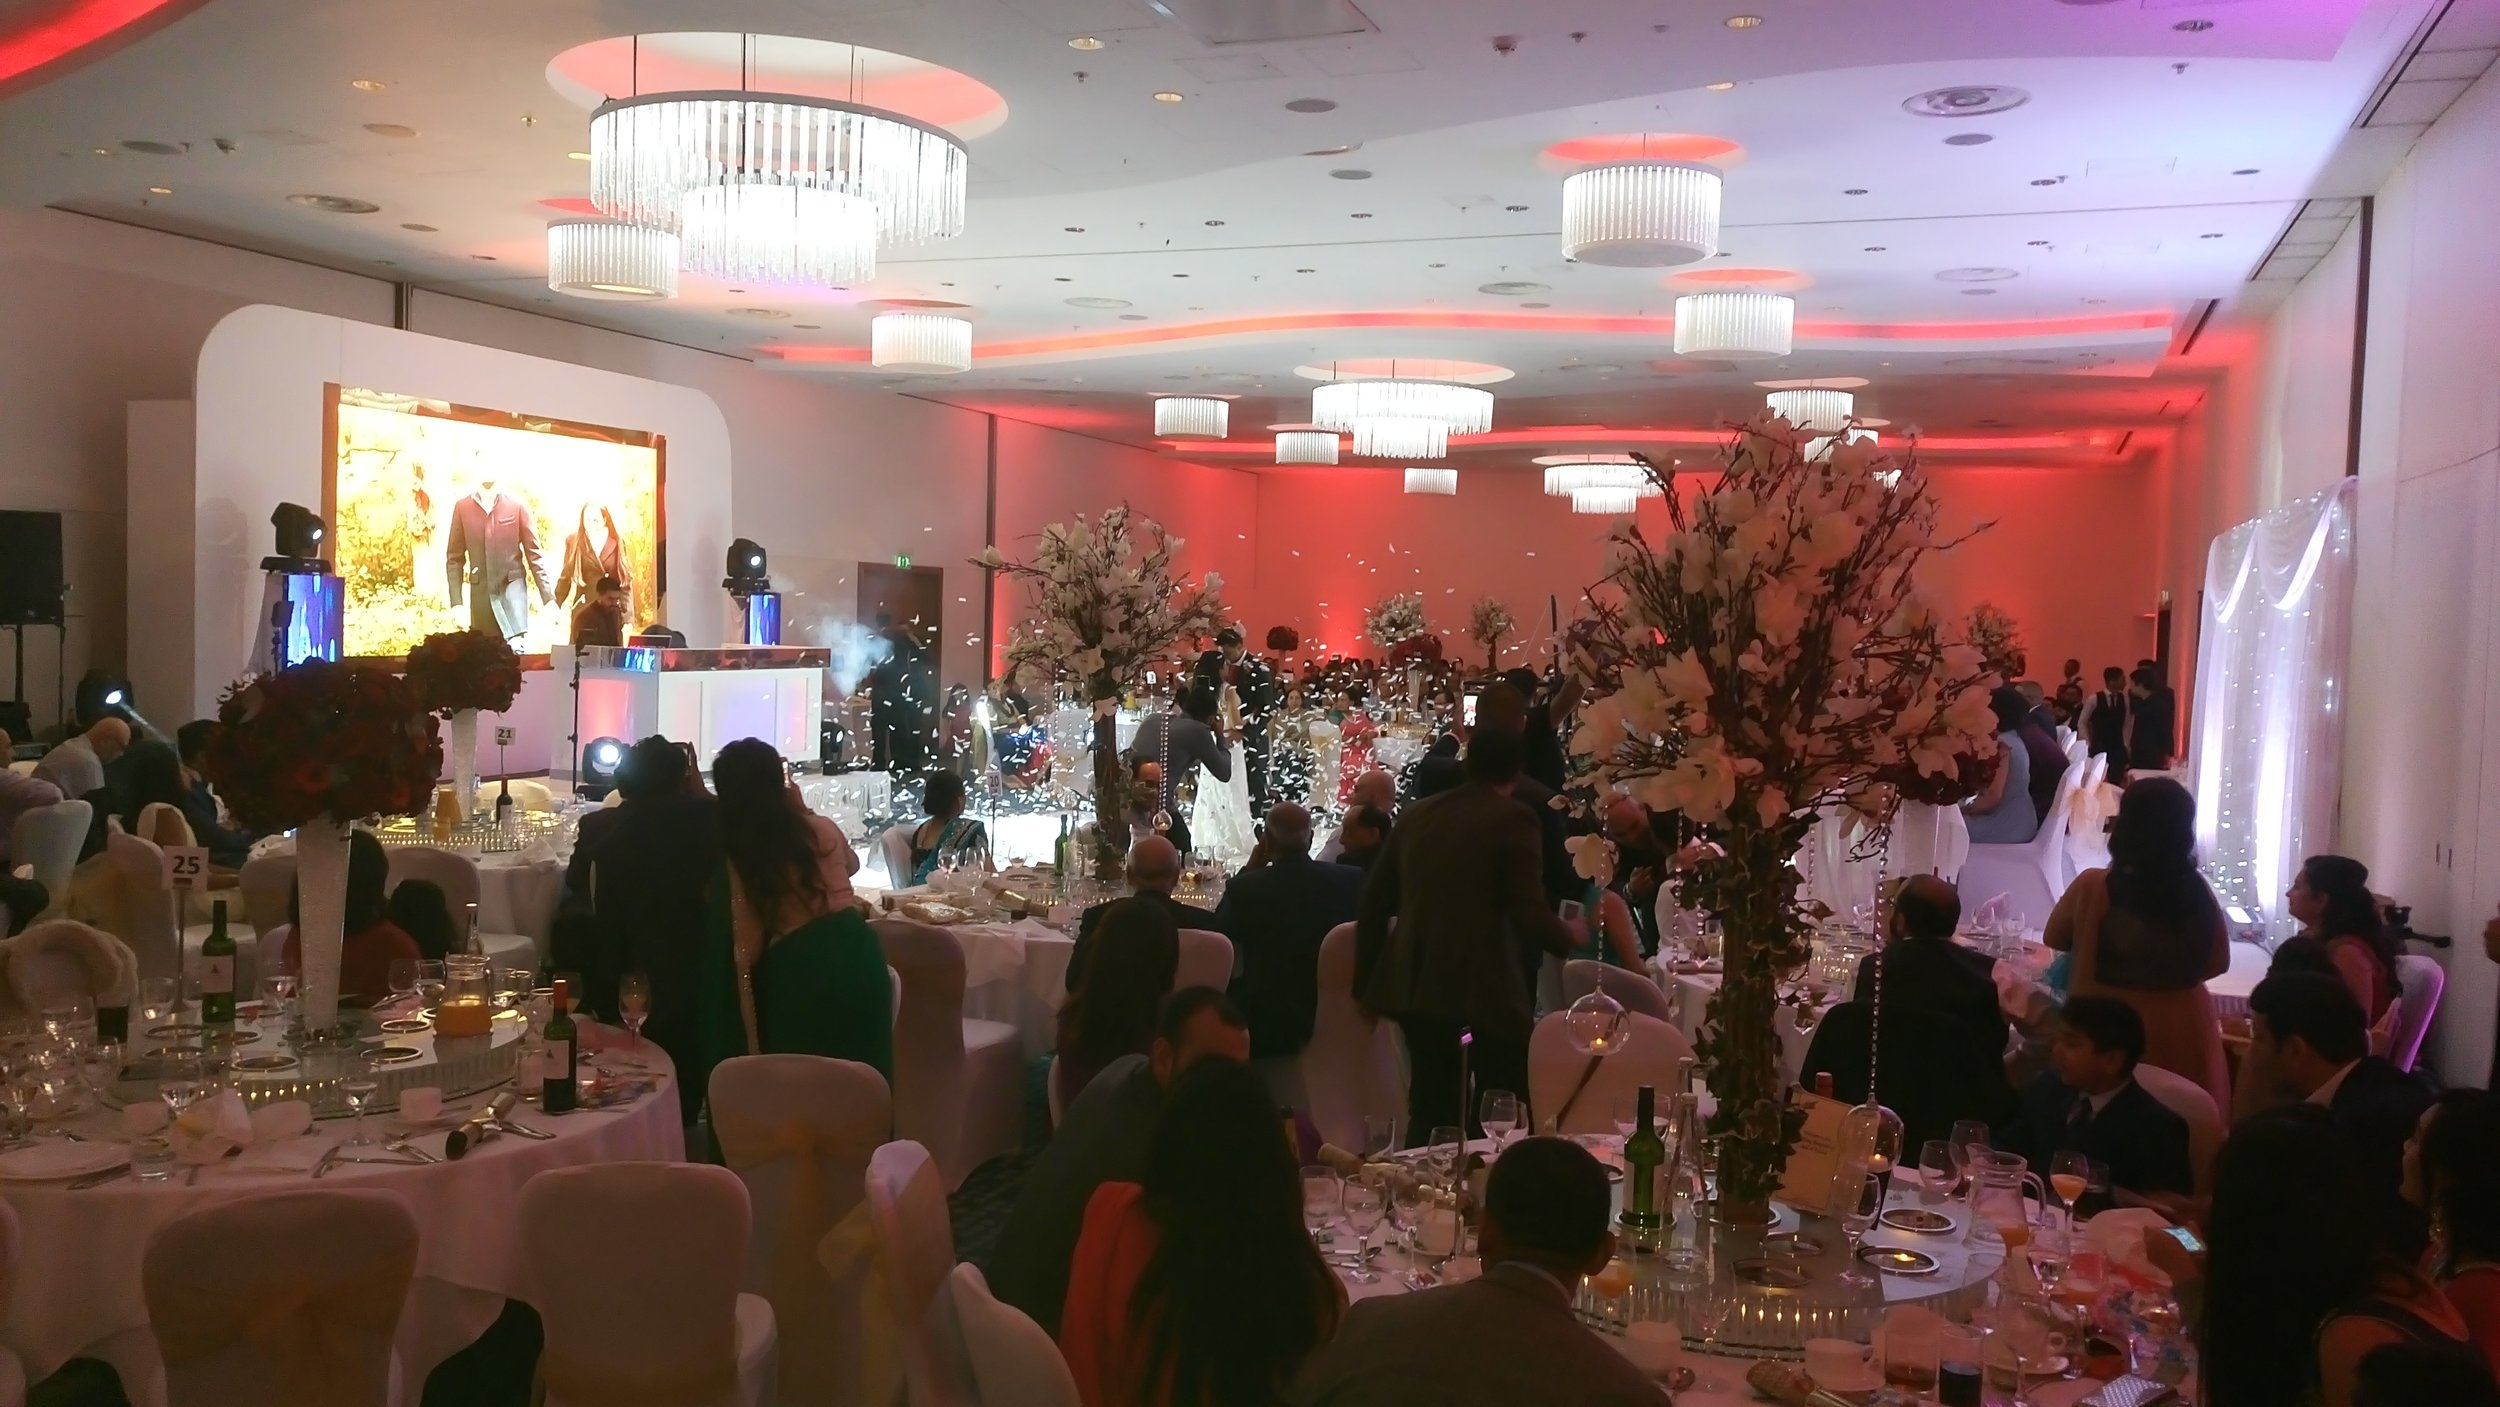 A photo from the big reception and party in the evening. Sejal was changed into a white wedding dress and Krunal wore a dinner suit and top hat - you can see the dancing in the centre of the picture here amongst the confetti.